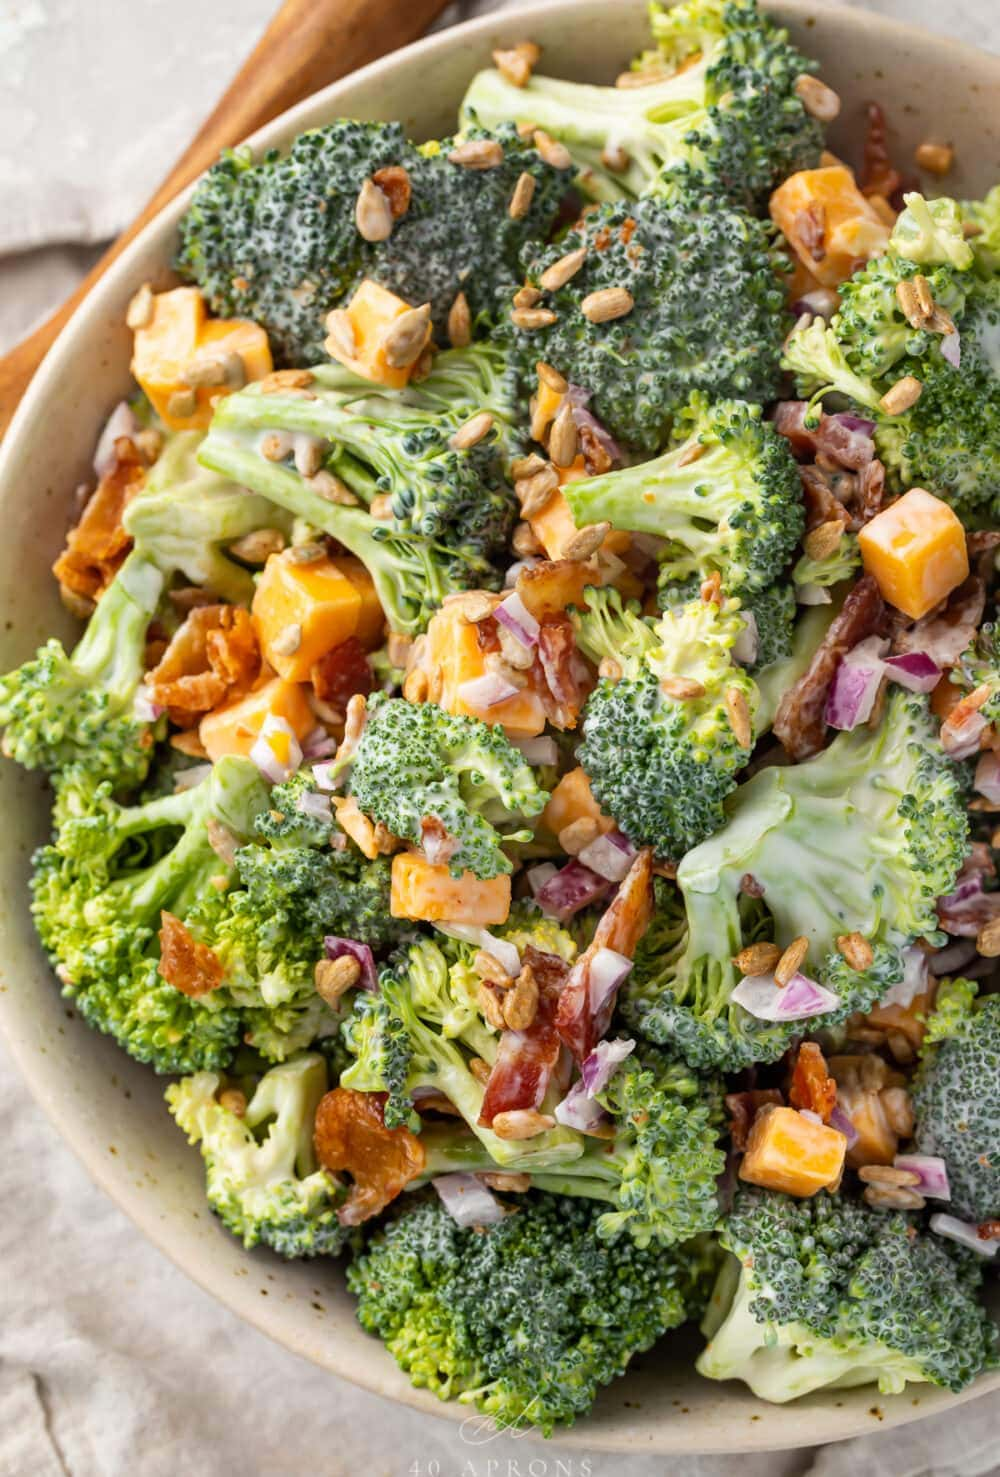 Keto broccoli salad in a large bowl on a table next to a wooden spoon